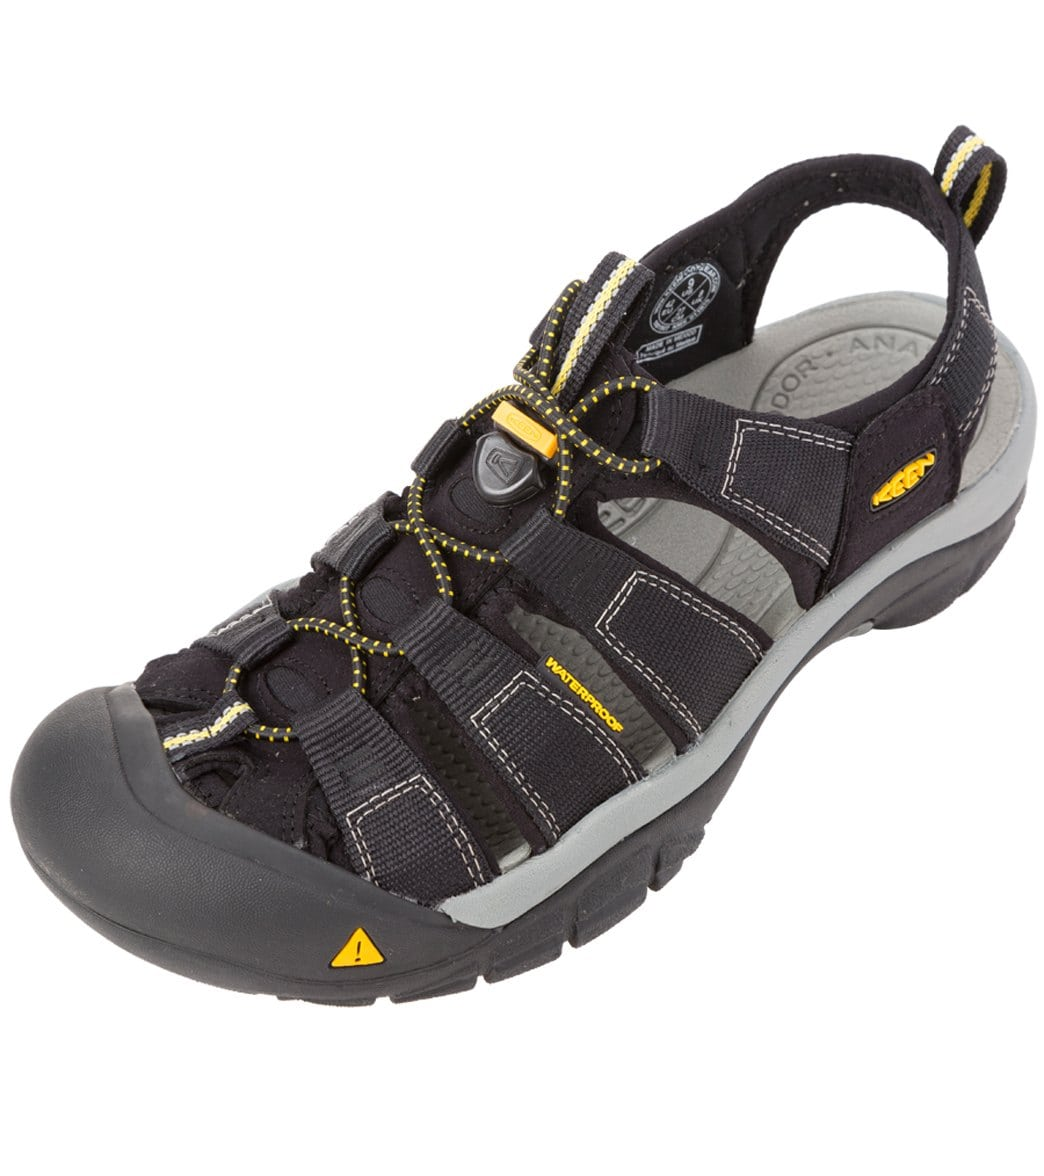 d7e354ed0d88 Keen Men s Newport H2 Water Shoes at SwimOutlet.com - Free Shipping